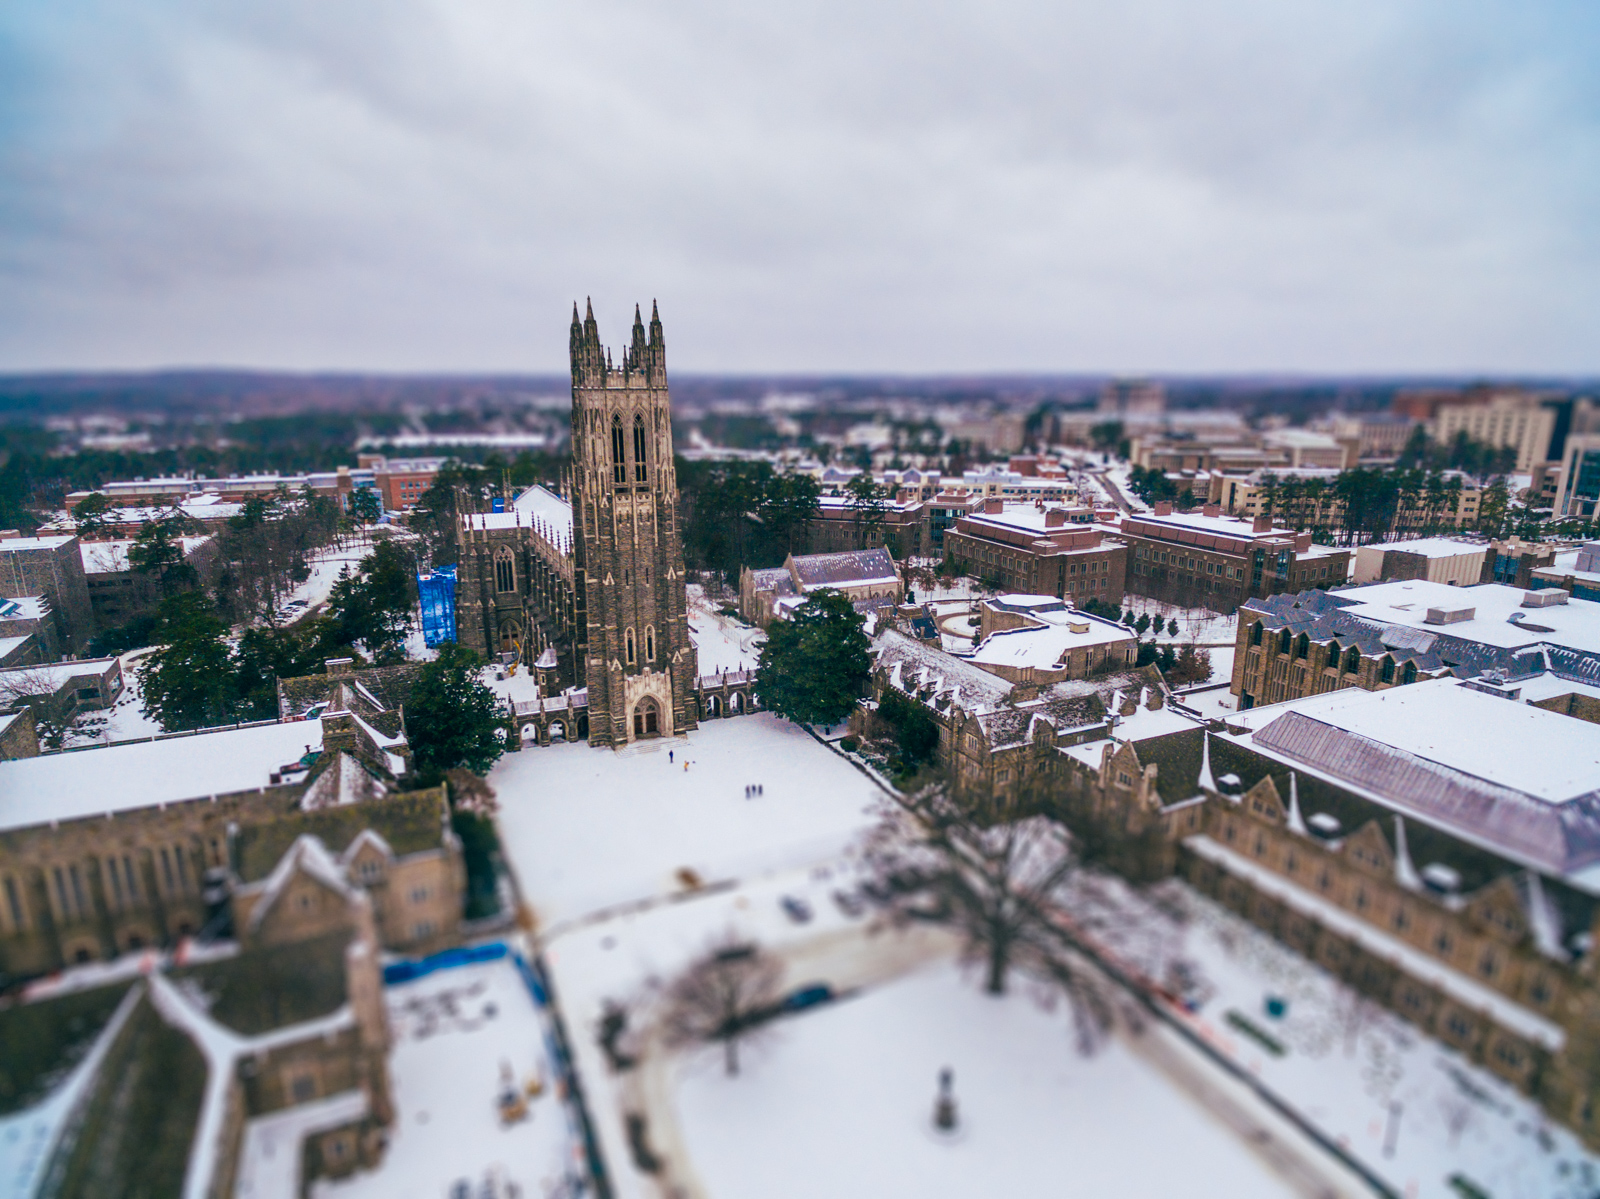 Duke in the snow from overhead